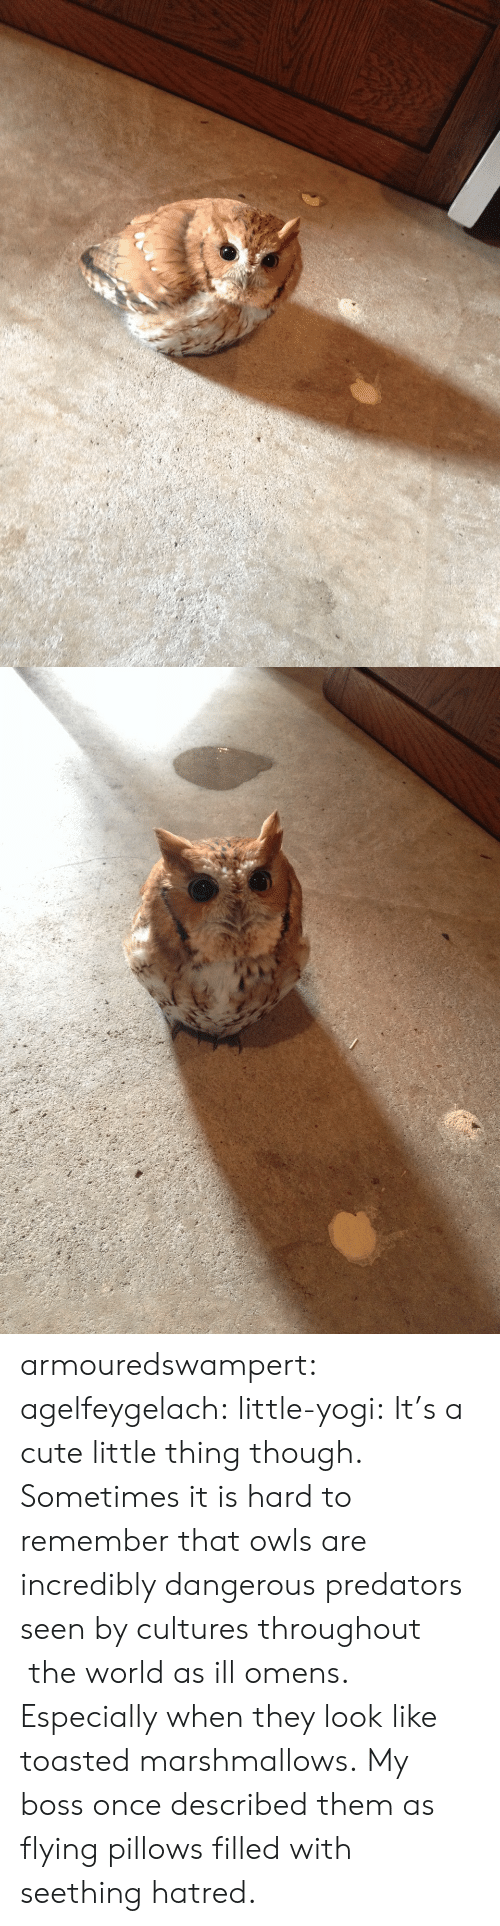 Cute Little: armouredswampert: agelfeygelach:  little-yogi:  It's a cute little thing though.  Sometimes it is hard to remember that owls are incredibly dangerous predators seen by cultures throughout  the world as ill omens. Especially when they look like toasted marshmallows.  My boss once described them as flying pillows filled with seething hatred.